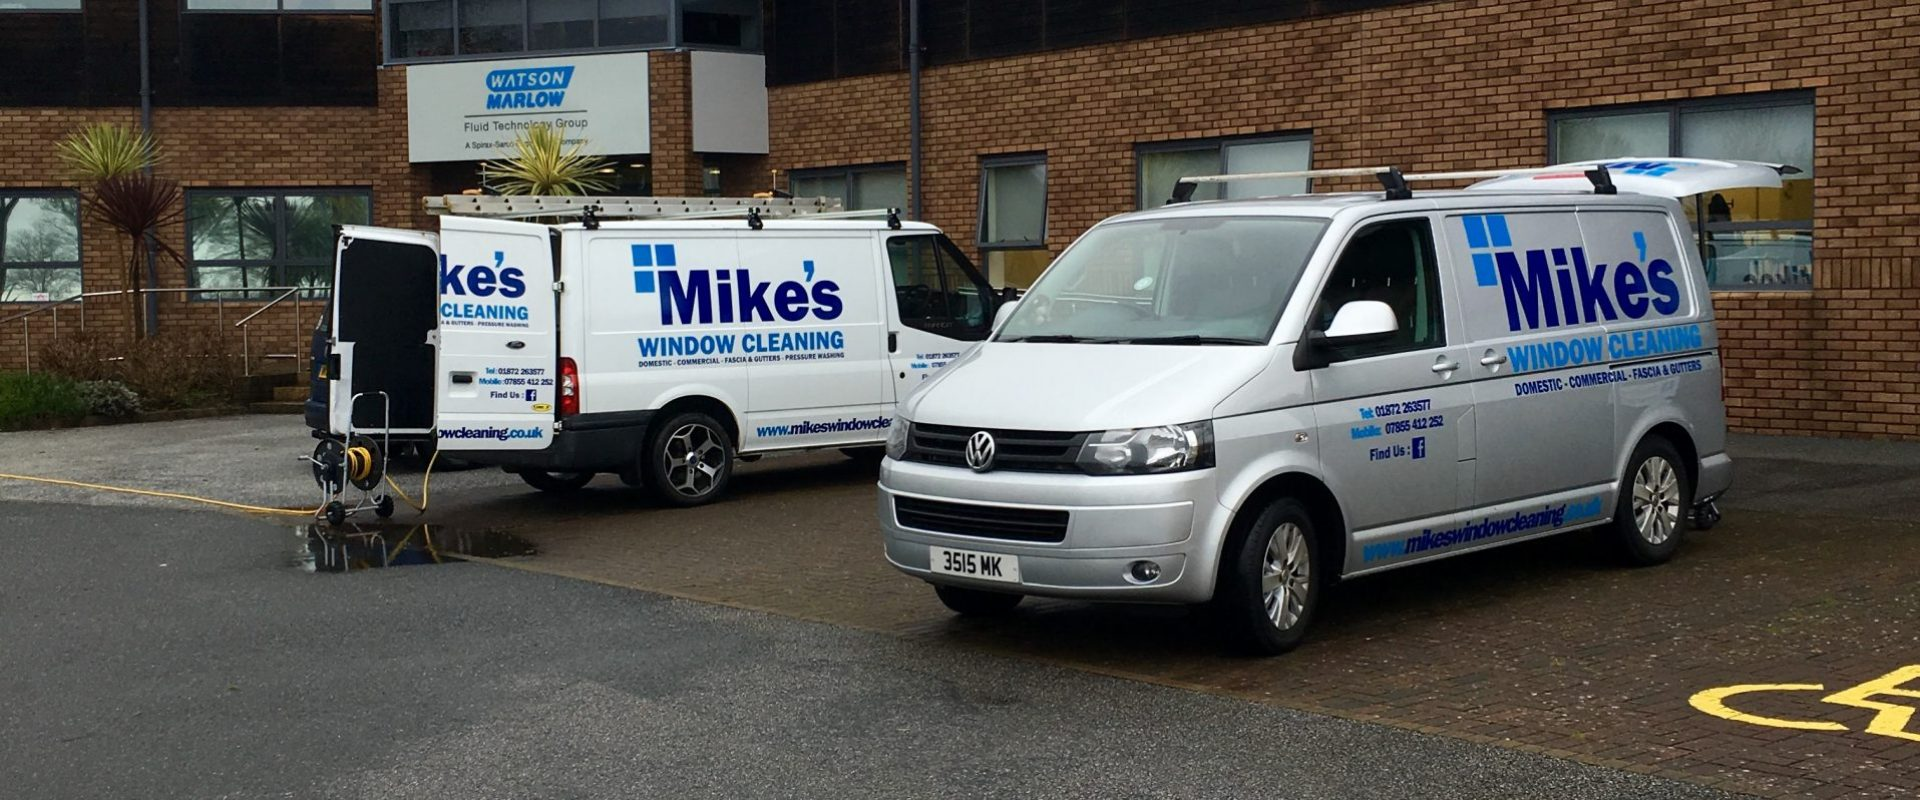 Truro Window Cleaning from 10 Pounds! – Mikes Window Cleaning